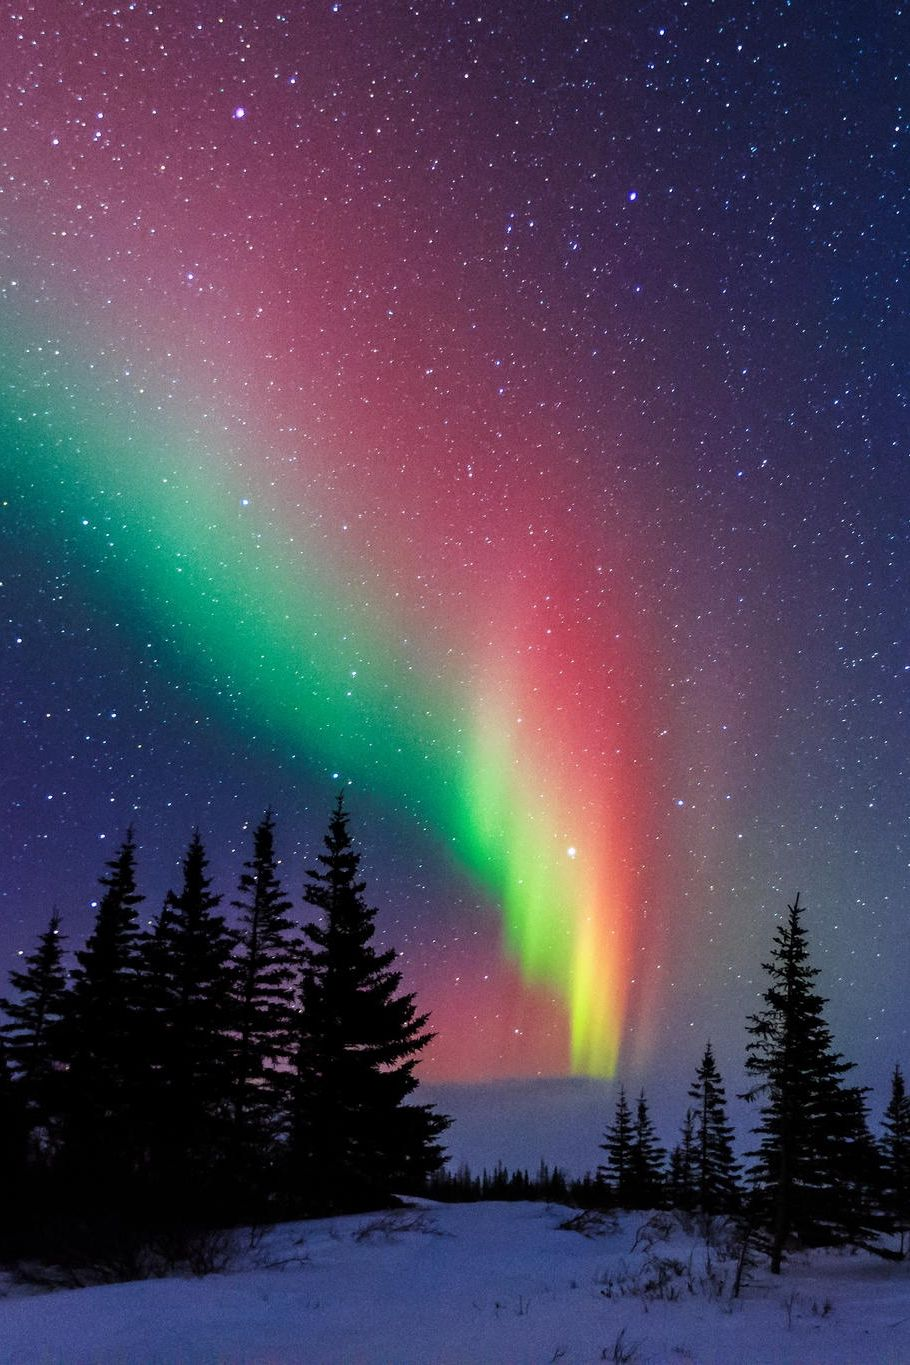 5. Canada--would love to see the Northern lights - a miracle of nature. Churchill, Manitoba, Canada. The 10 Most Beautiful Towns in Canada on TheCultureTrip.com. Click the image to find out what Canadian towns you shouldn't miss.